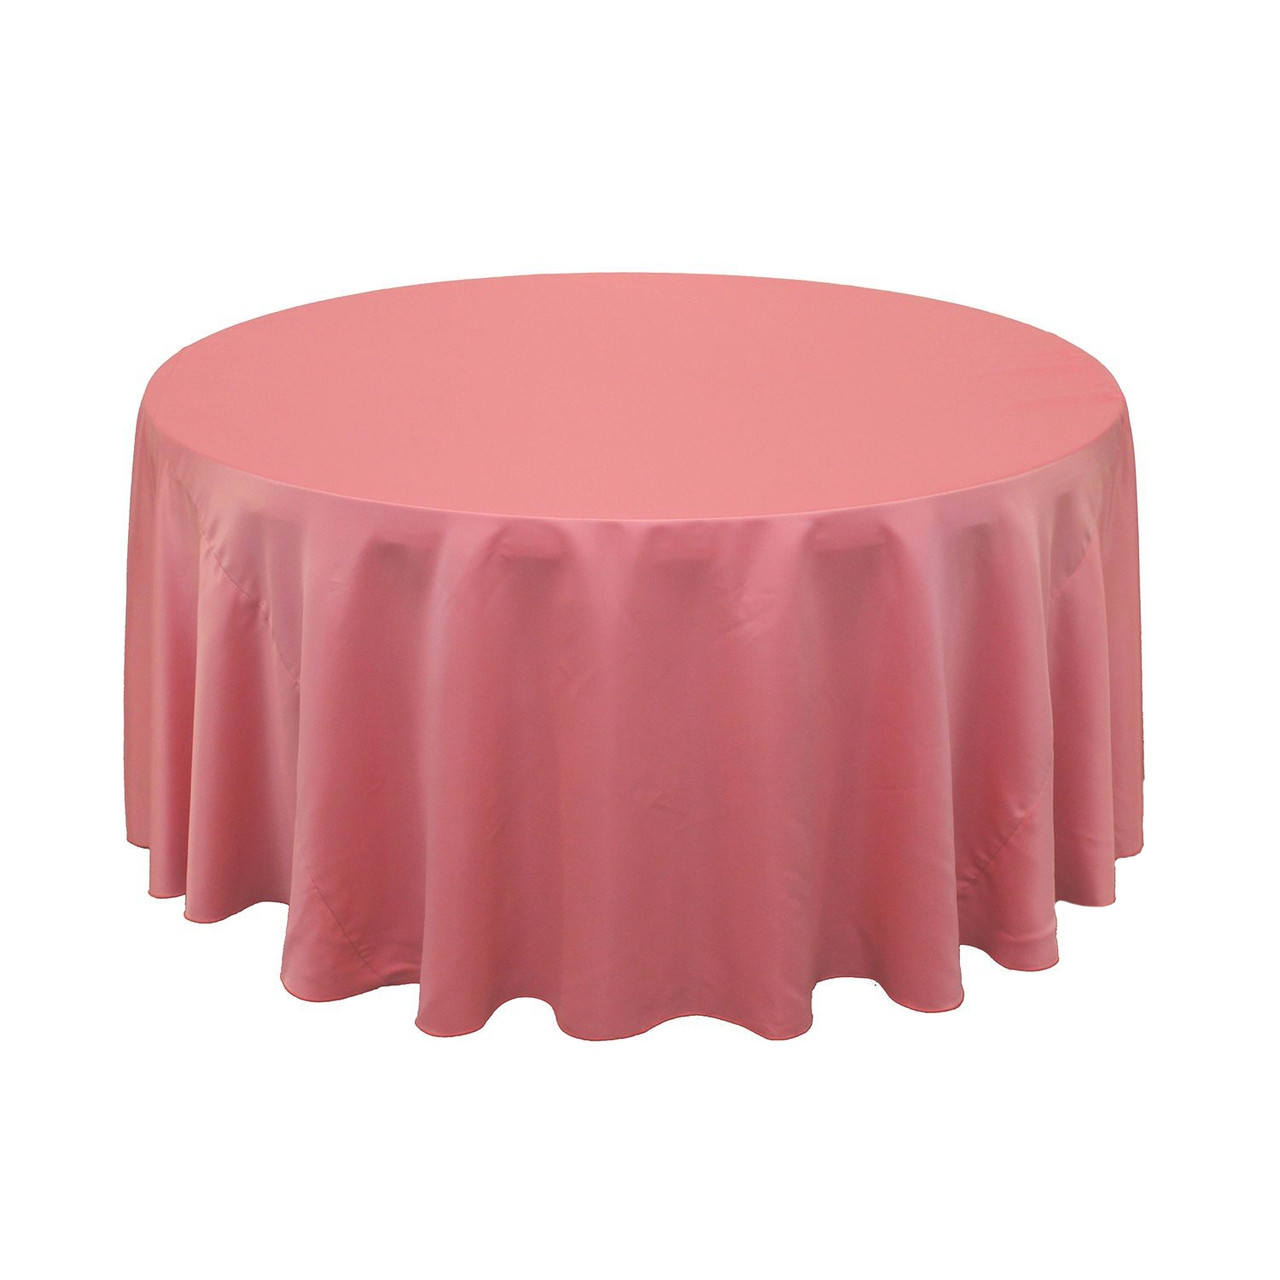 120 Inch L Amour Satin Round Tablecloths Coral Wedding